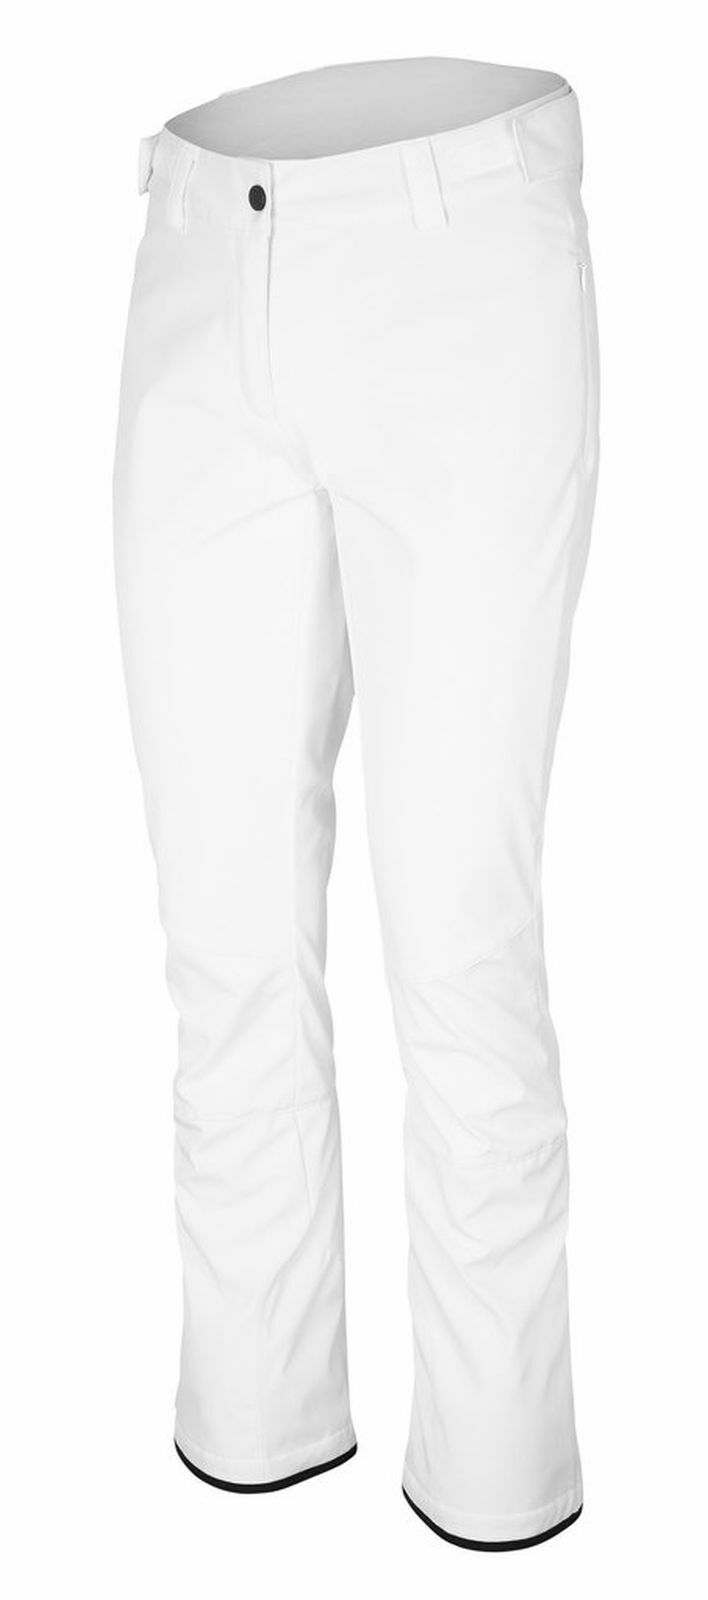 Ziener Women's Ski Trousers Pants Softshell Tamil Lady  White 184104 01  buy cheap